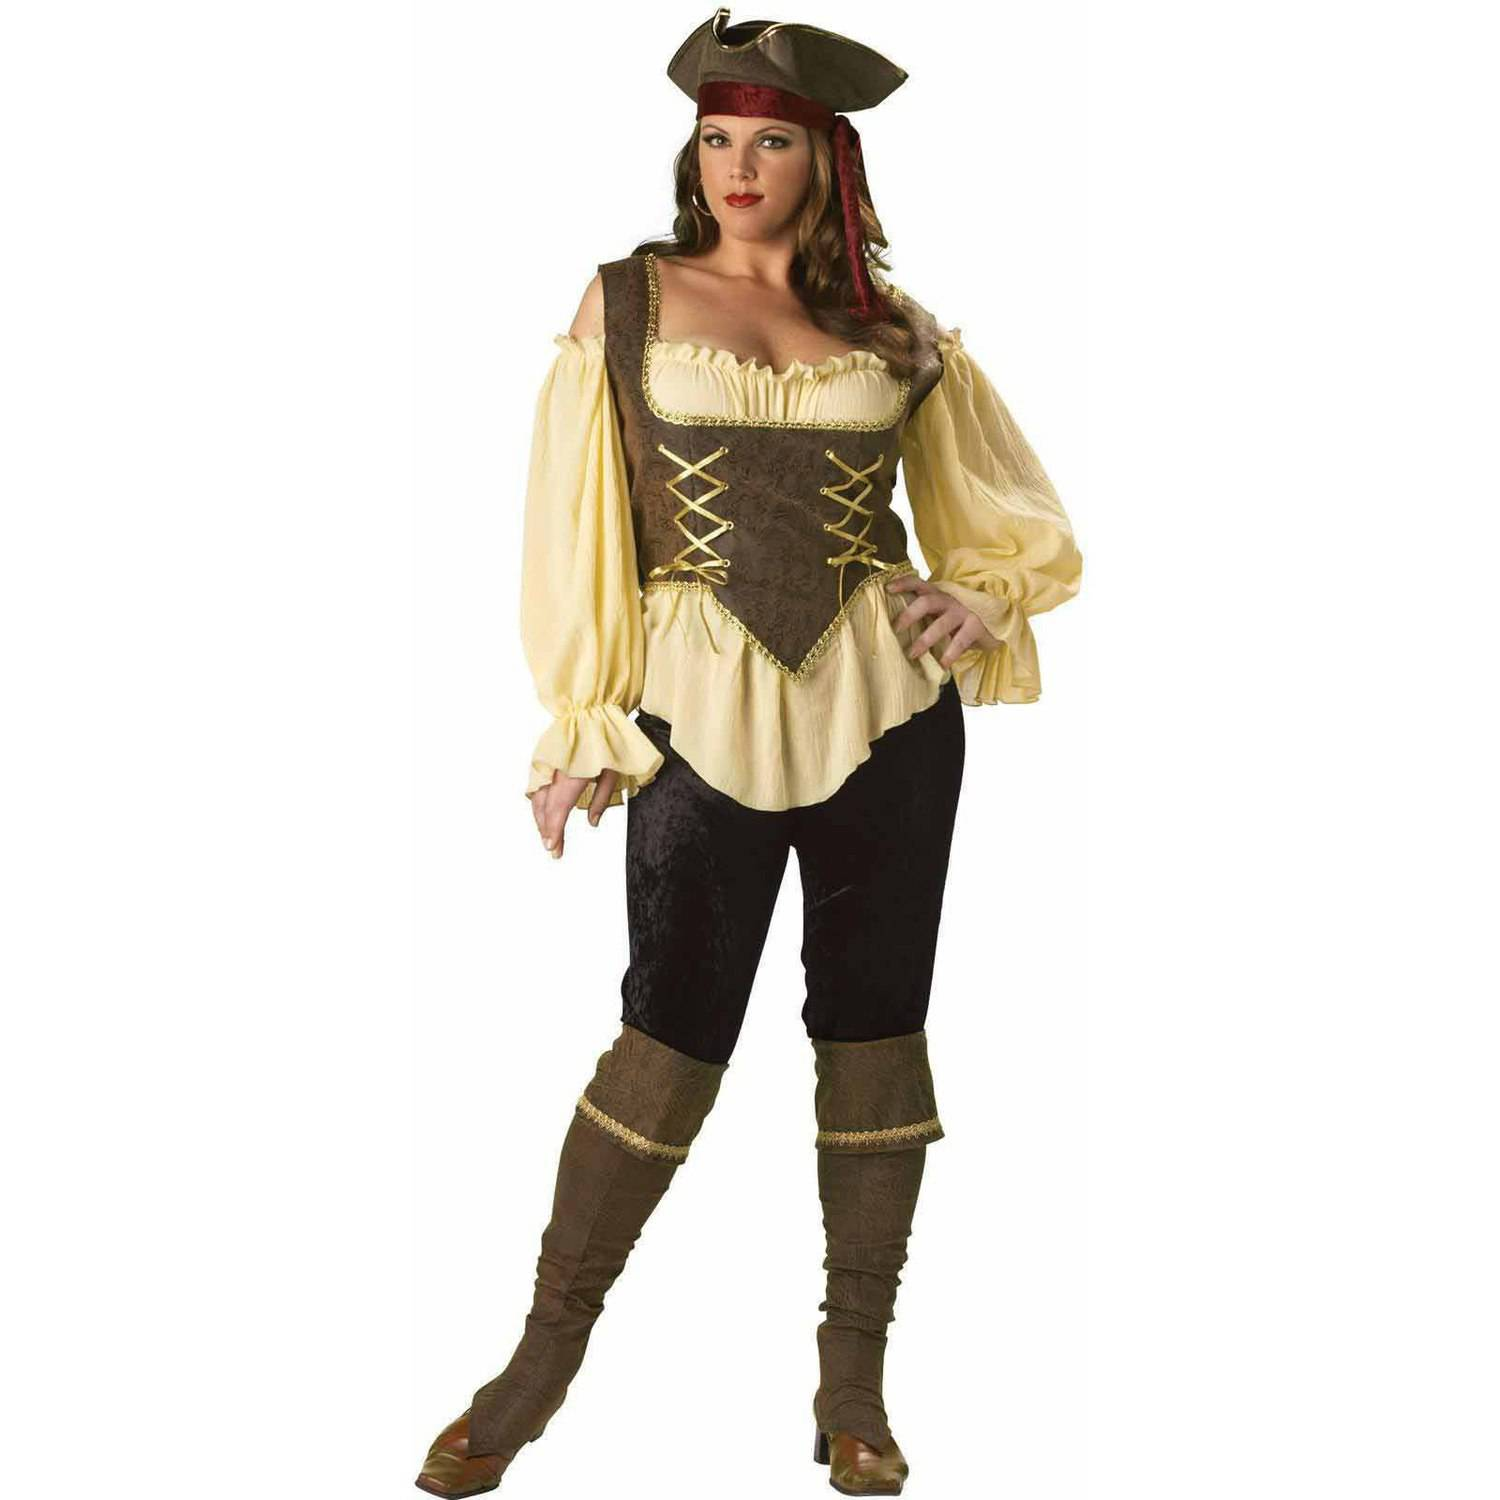 Rustic Pirate Lady Elite Collection Plus Size Womenu0027s Adult Halloween Costume - Walmart.com  sc 1 st  Walmart & Rustic Pirate Lady Elite Collection Plus Size Womenu0027s Adult ...